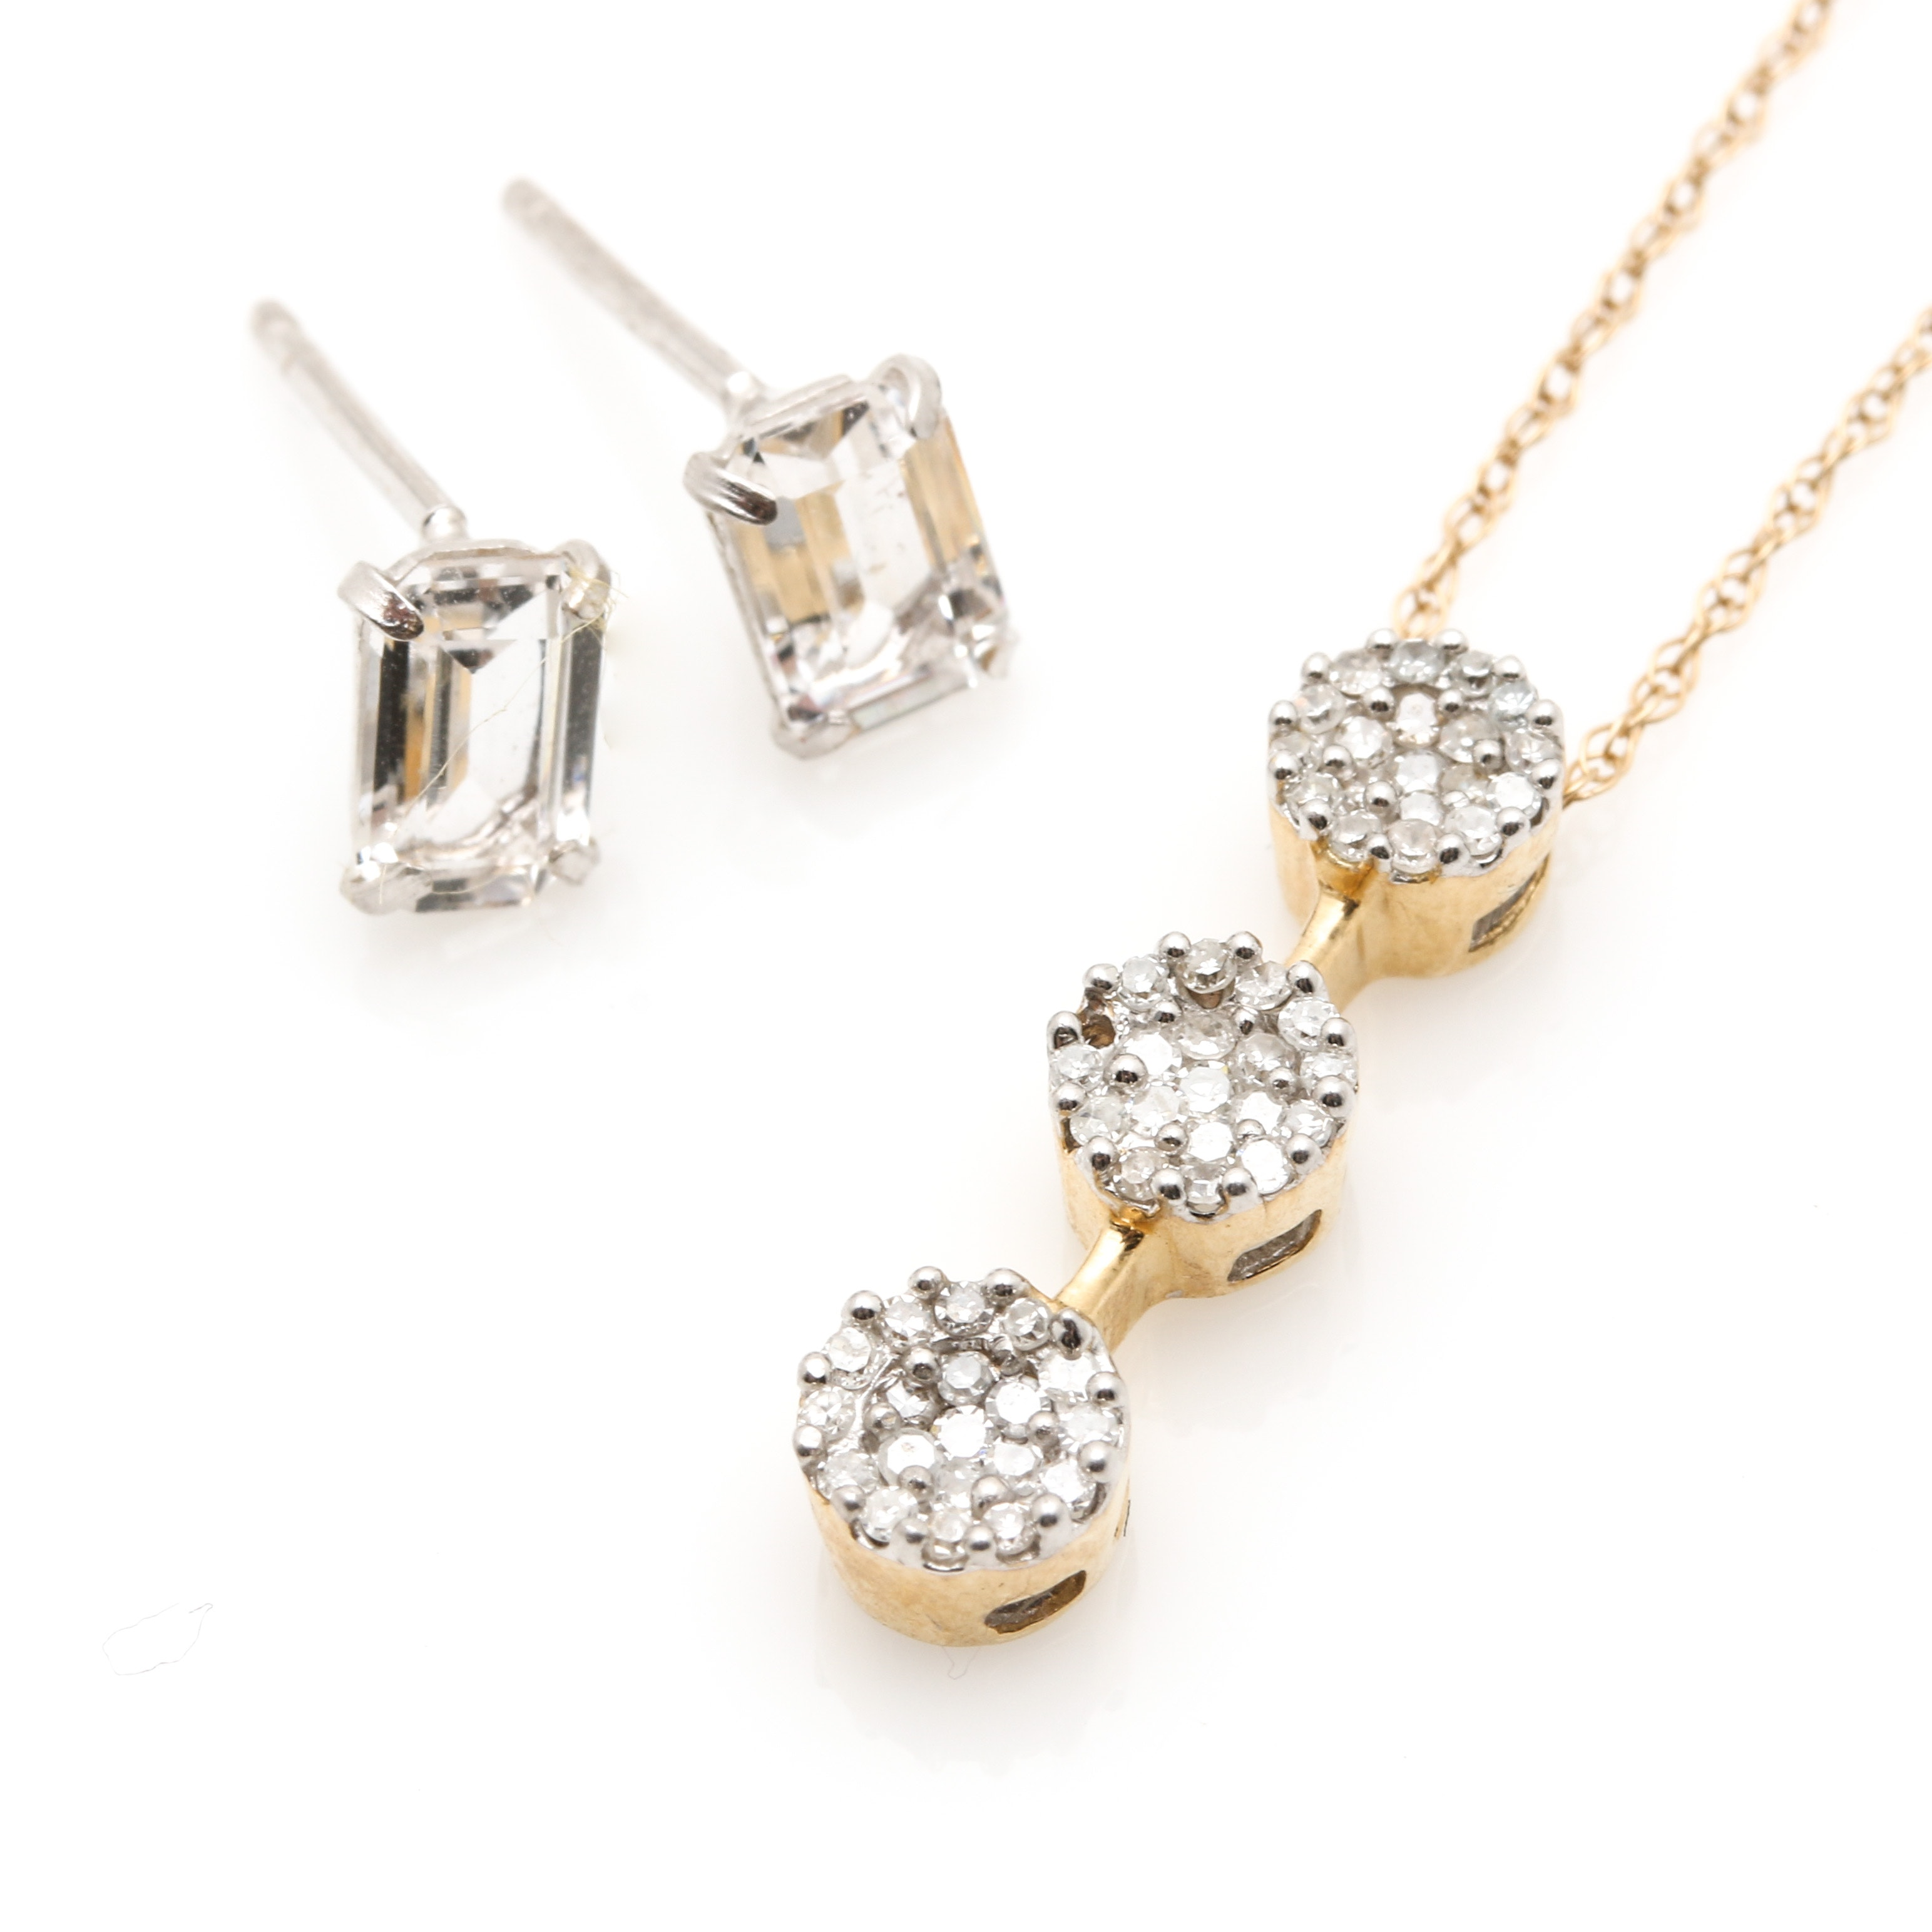 14K Two Tone Gold White Spinel and Diamond Necklace and Earrings